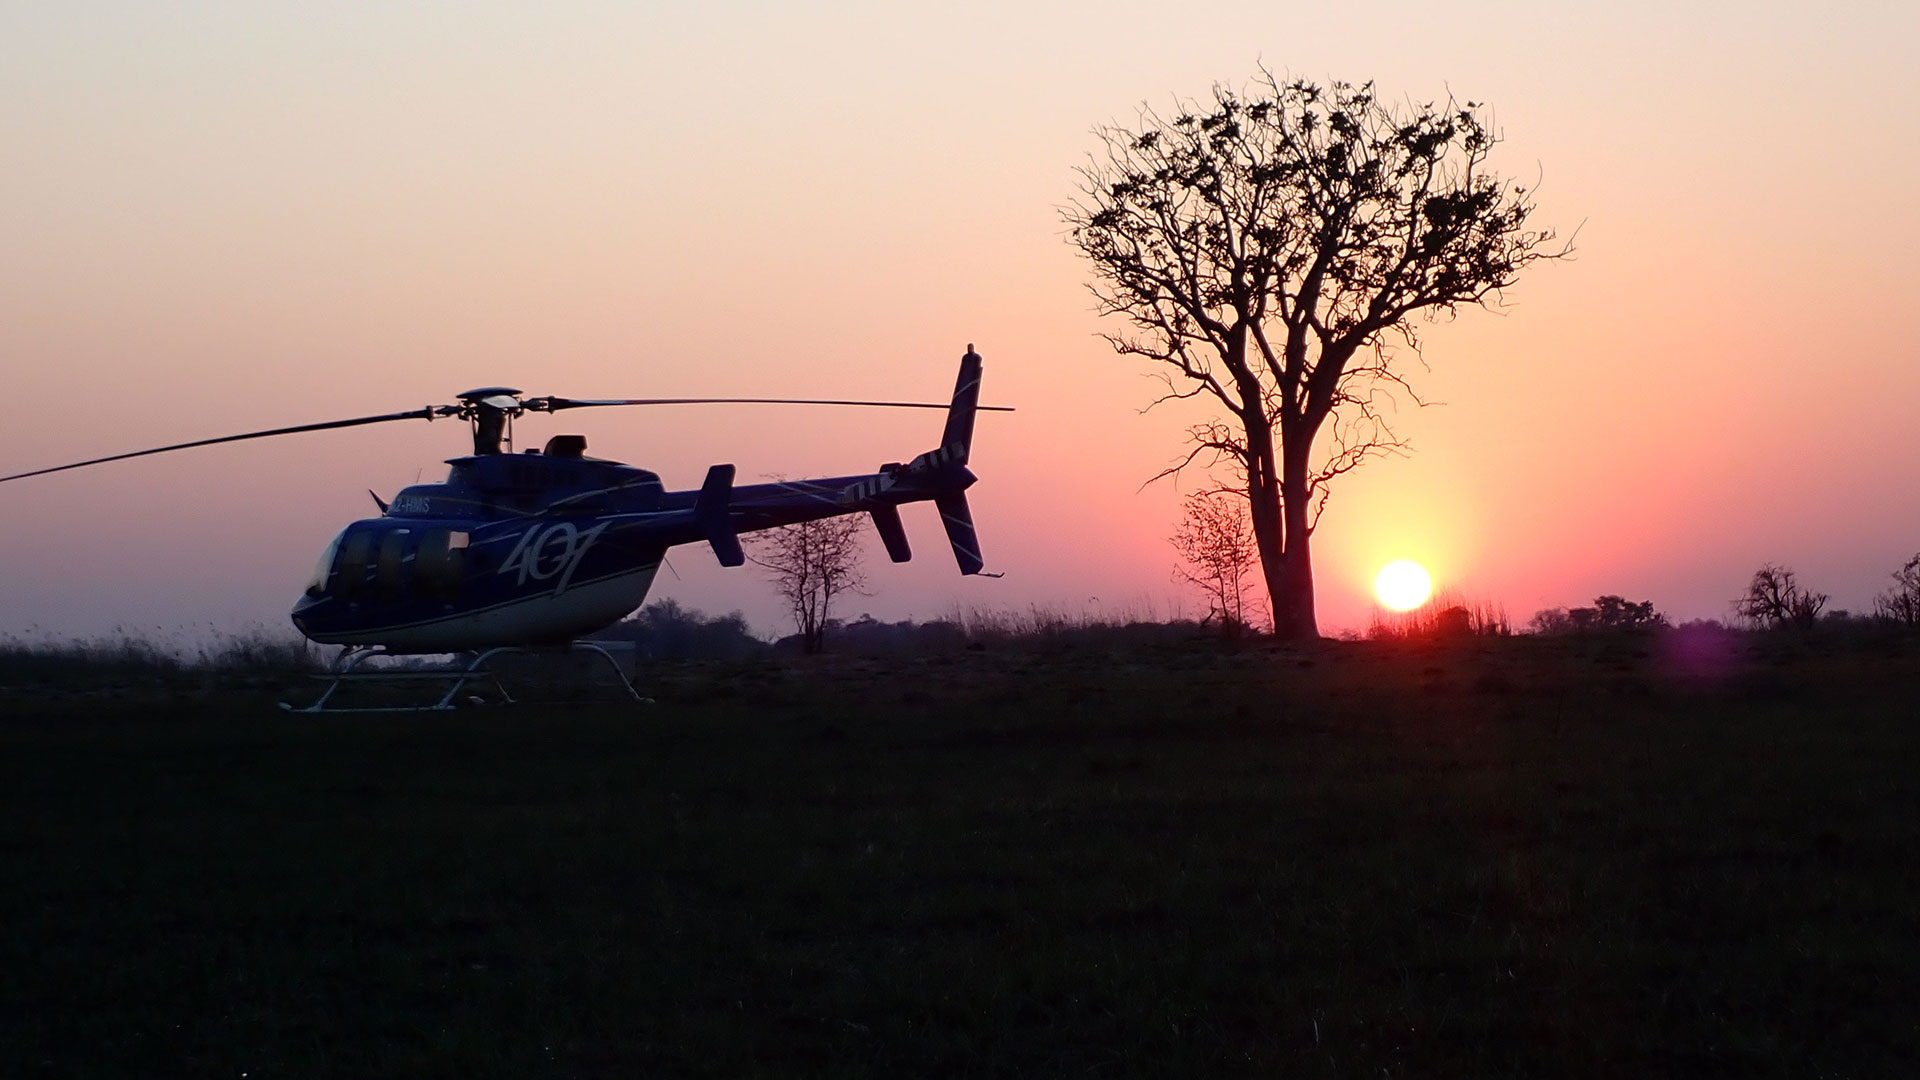 Bell helicopter on an expedition through Angola, Namibia and Botswana